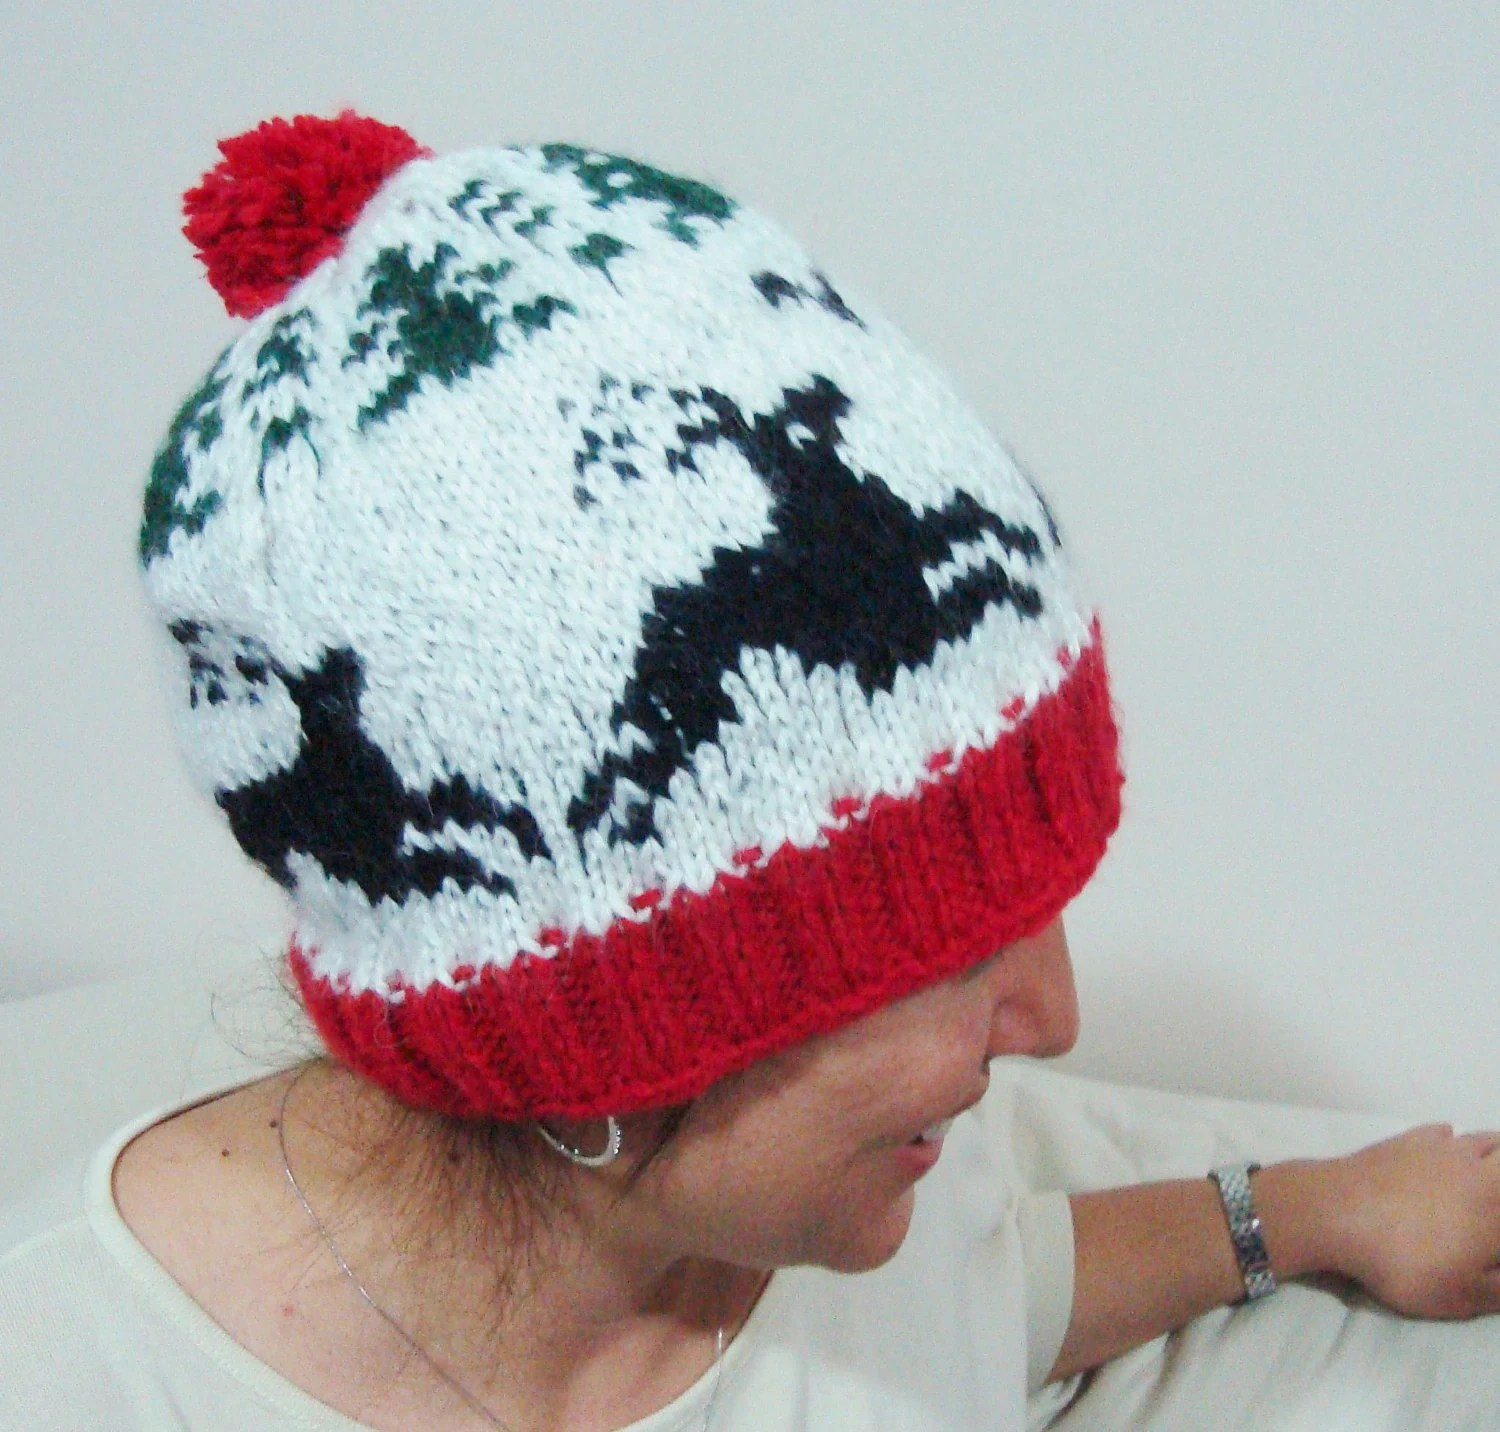 Deer Patterned Hat for Women-Men Hat-Hand Knit-Red Holiday-Winter Accessories-Christmas Gift